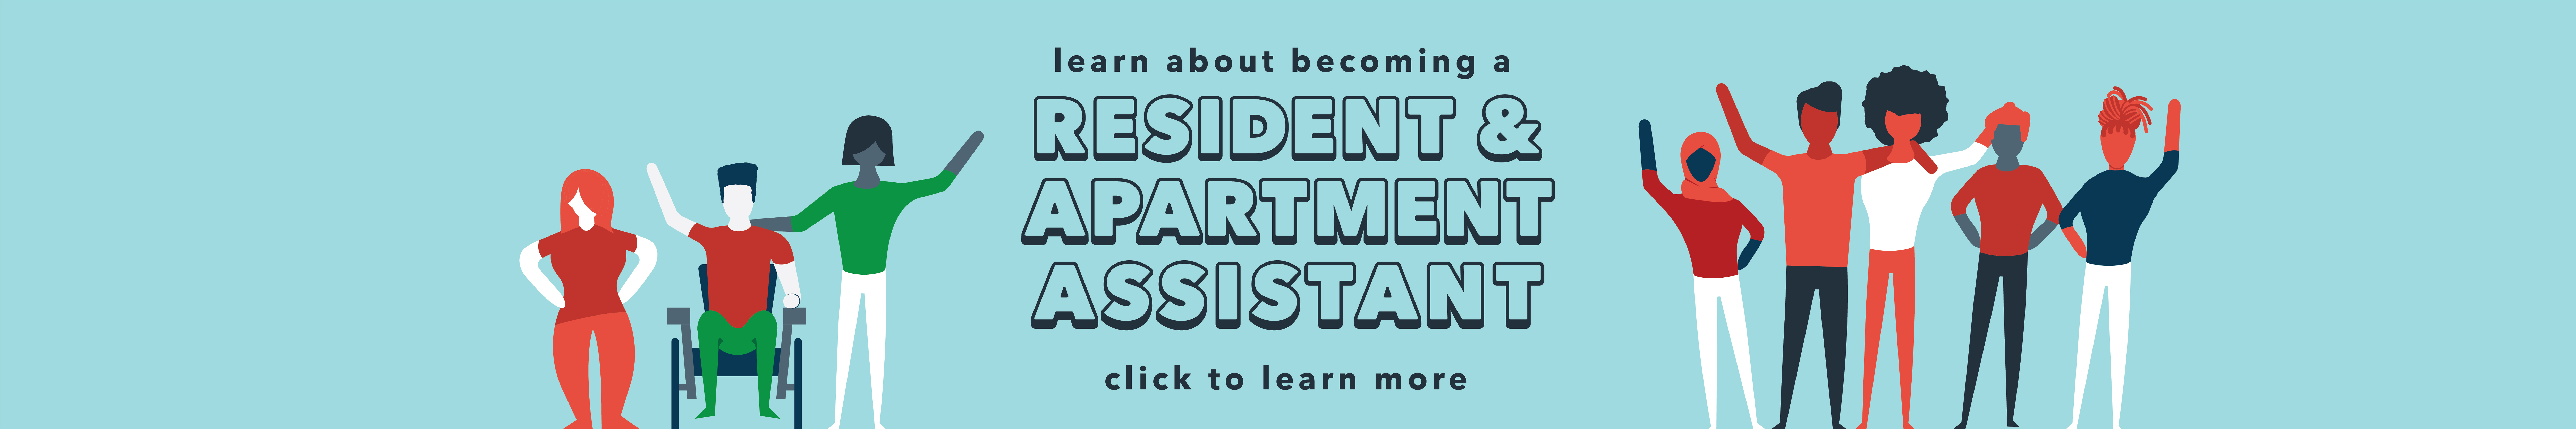 learn more about becoming a resident and apartment assistant click to learn more